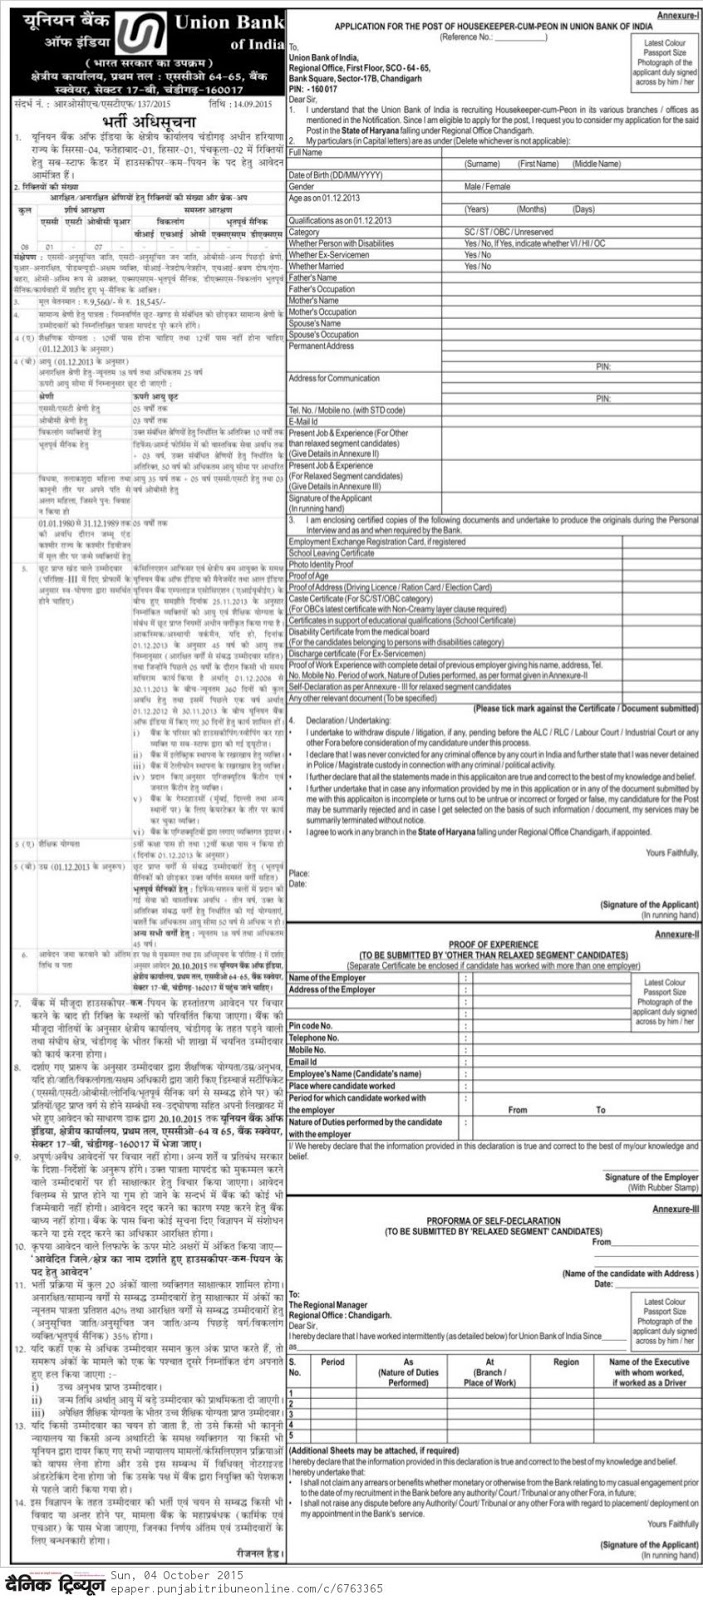 floor sco 64065 bank square sector 17 b chandigarh 160017 send one application for one post incomplete application will be rejected